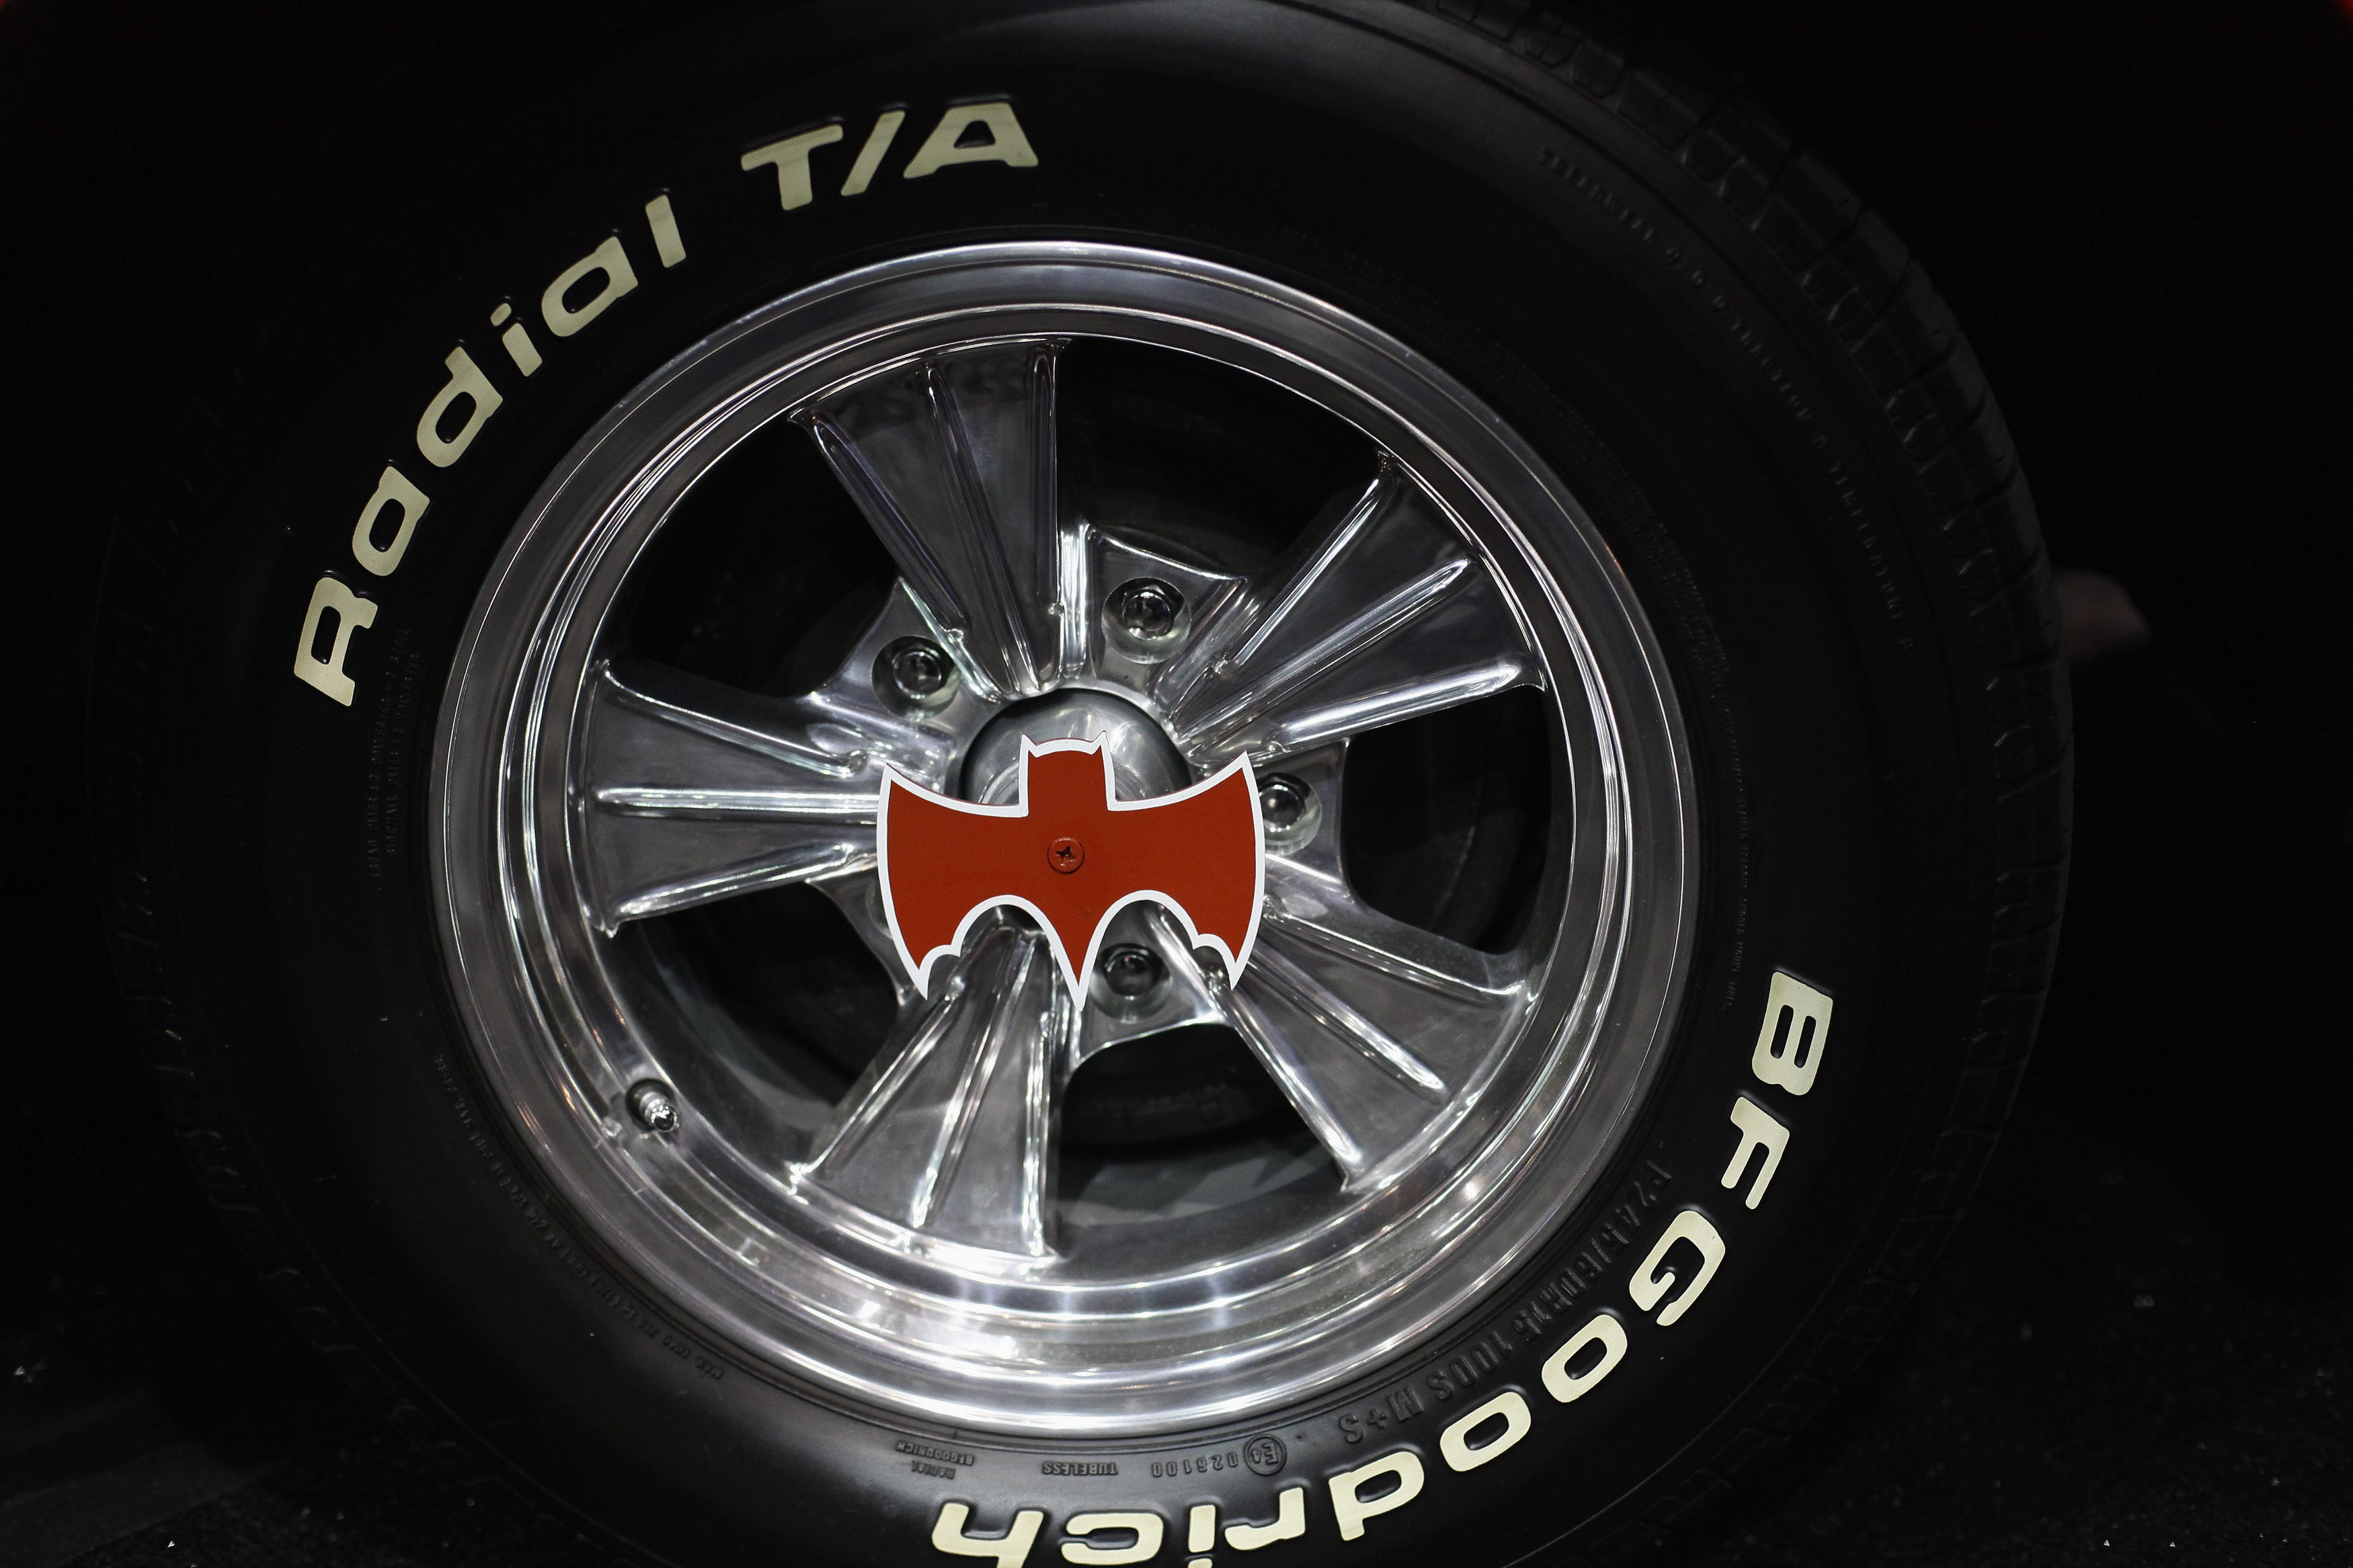 A wheel of the original Batmobile is displayed during the Barrett-Jackson collectors car auction in Scottsdale, Arizona January 19, 2013. The vehicle was sold for $4,200,000, announced the auction company. REUTERS/Joshua Lott (UNITED STATES - Tags: ENTERTAINMENT SOCIETY BUSINESS)